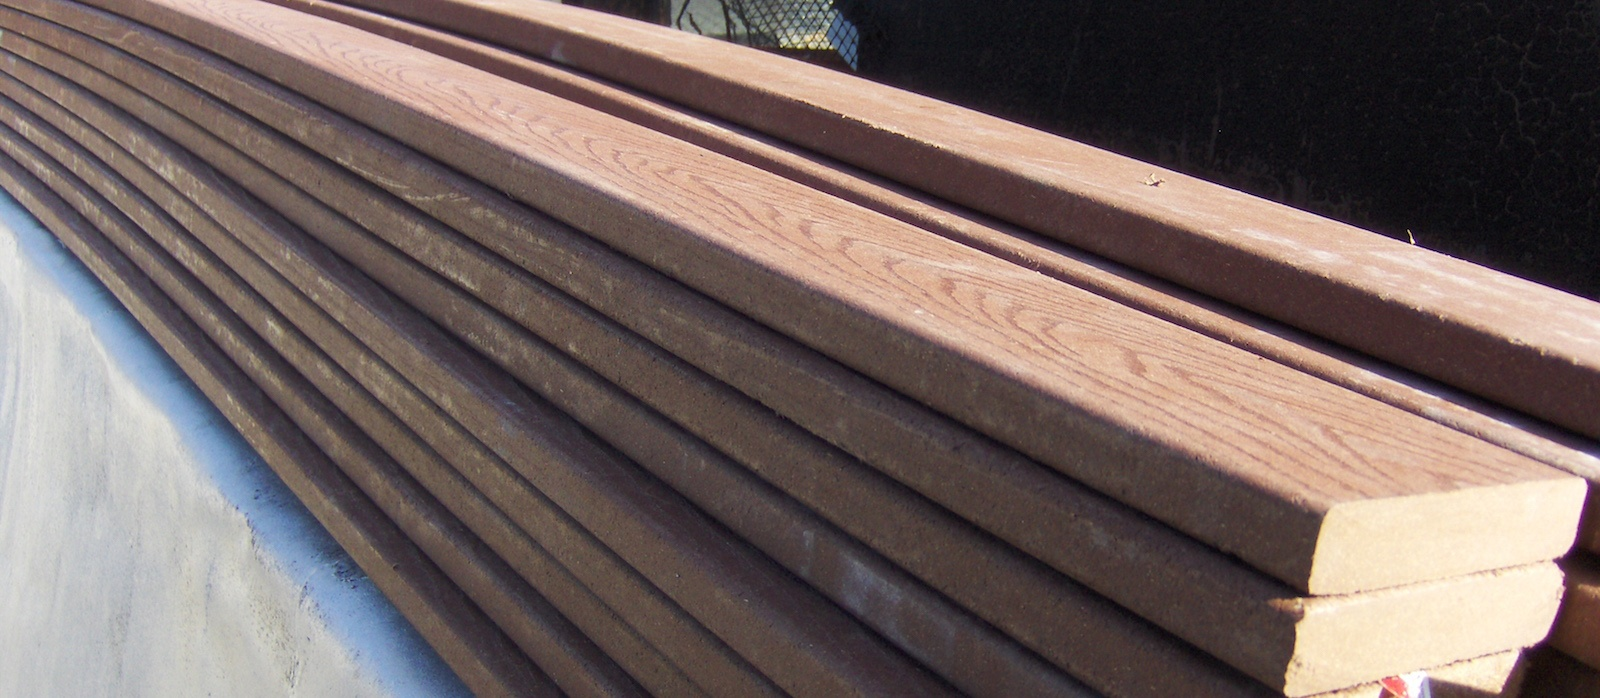 Trex composite decking vs permatrak concrete boardwalk for Timber decking materials